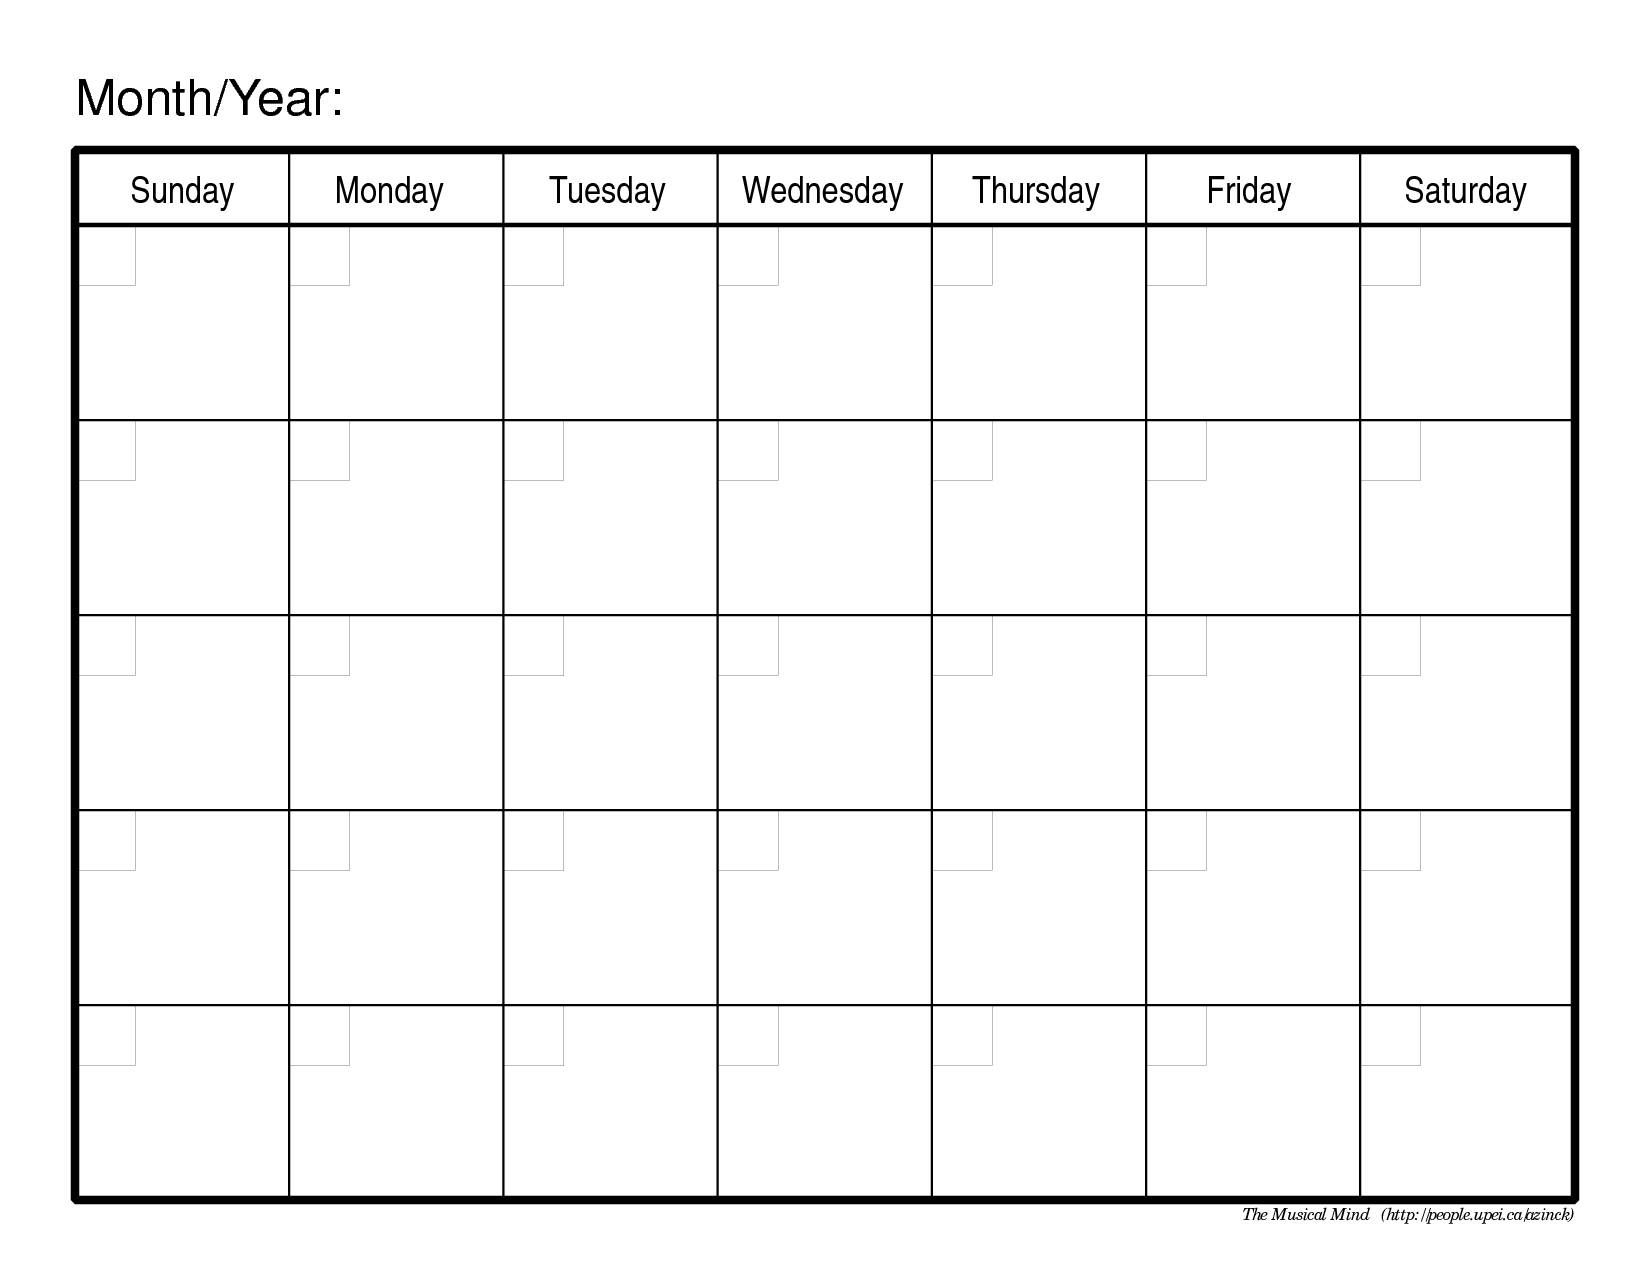 Month Calendar Template Word  Bolan.horizonconsulting.co intended for Monday Through Friday Calendar Template Word